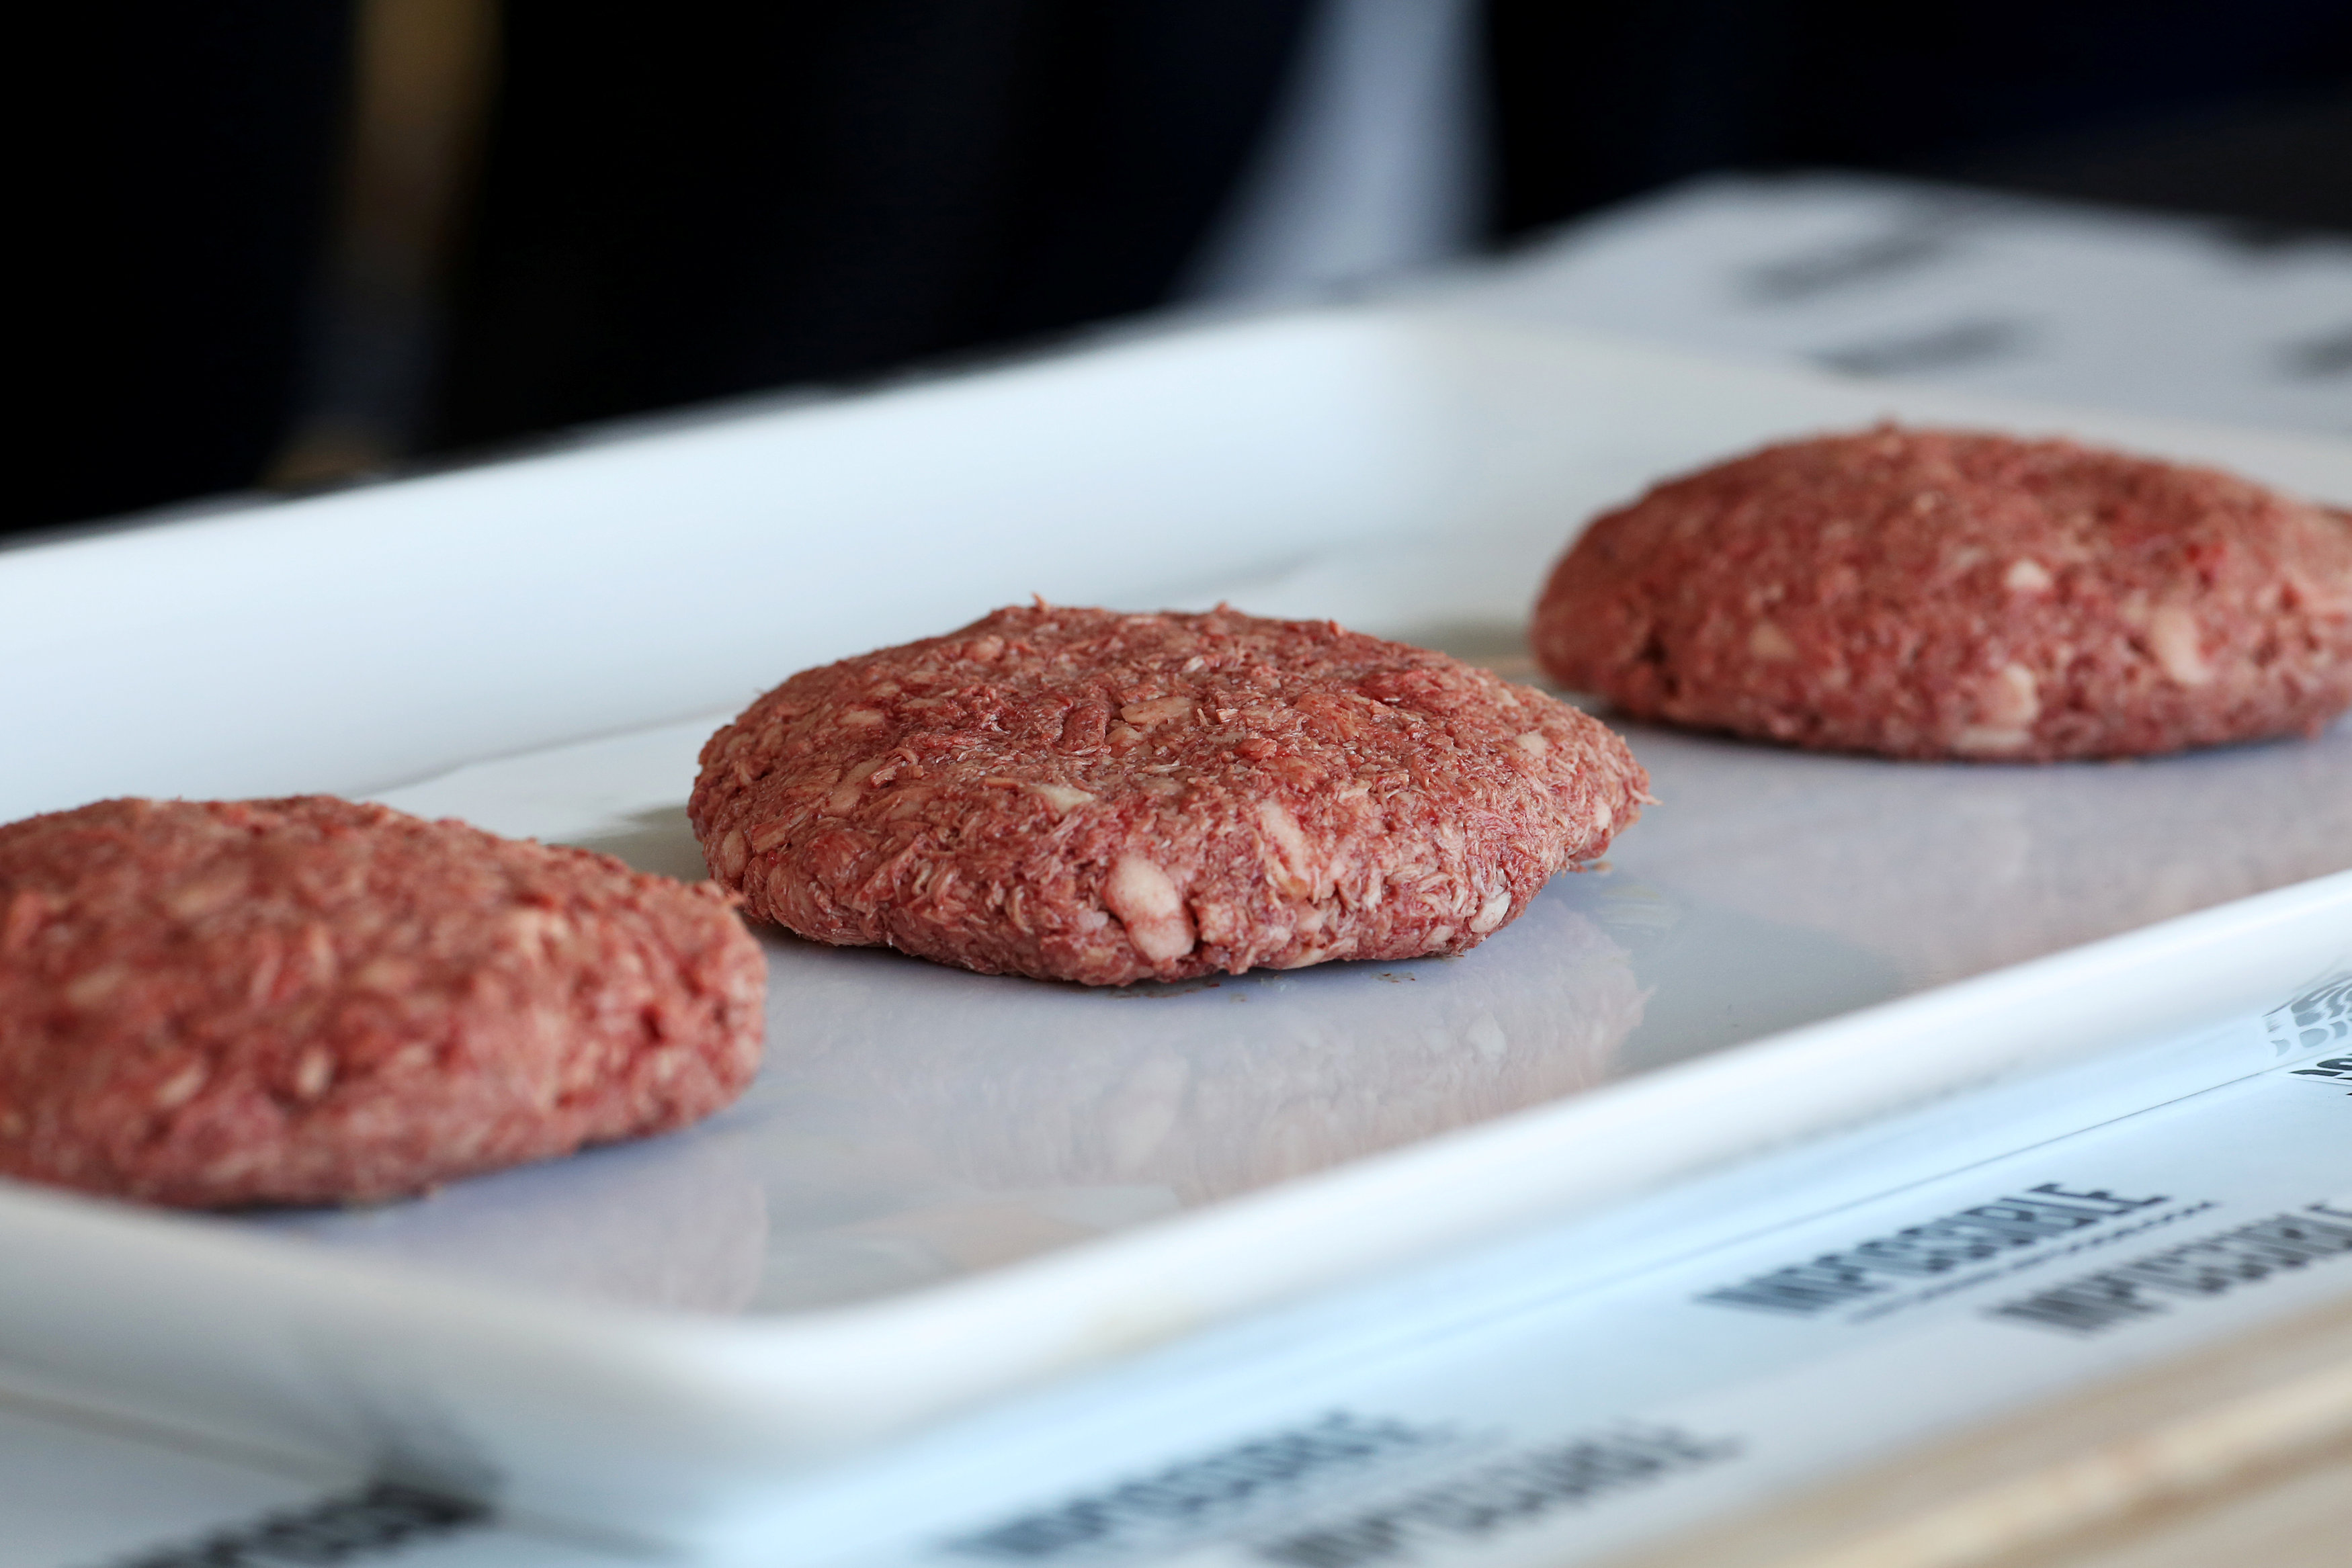 Plant-based hamburger patties are on display during a media tour of Impossible Foods labs and processing plant in Redwood City, California, U.S. October 6, 2016. Picture taken October 6, 2016. REUTERS/Beck Diefenbach